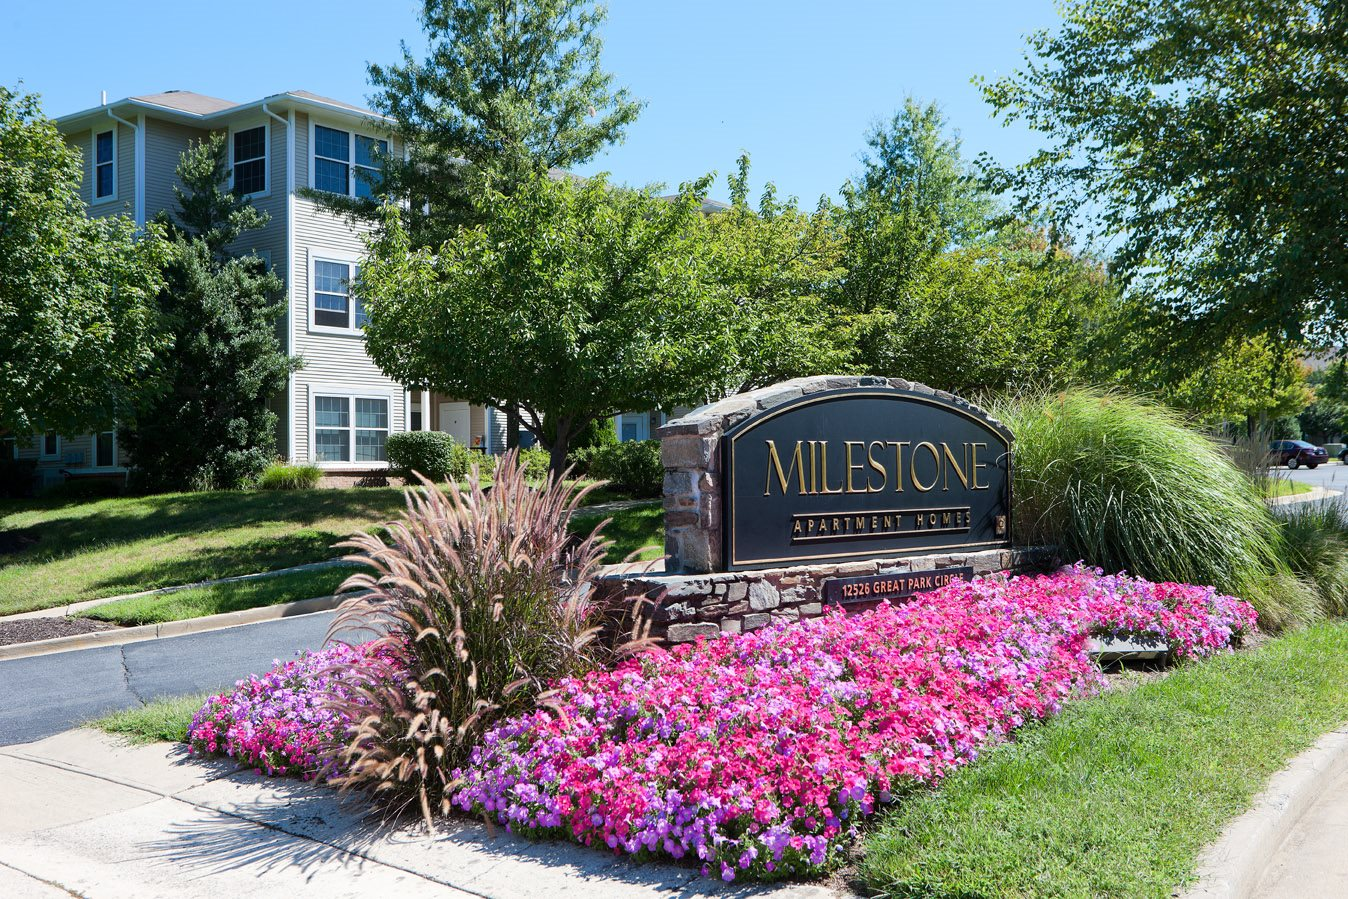 Milestone Apartment Homes background 1